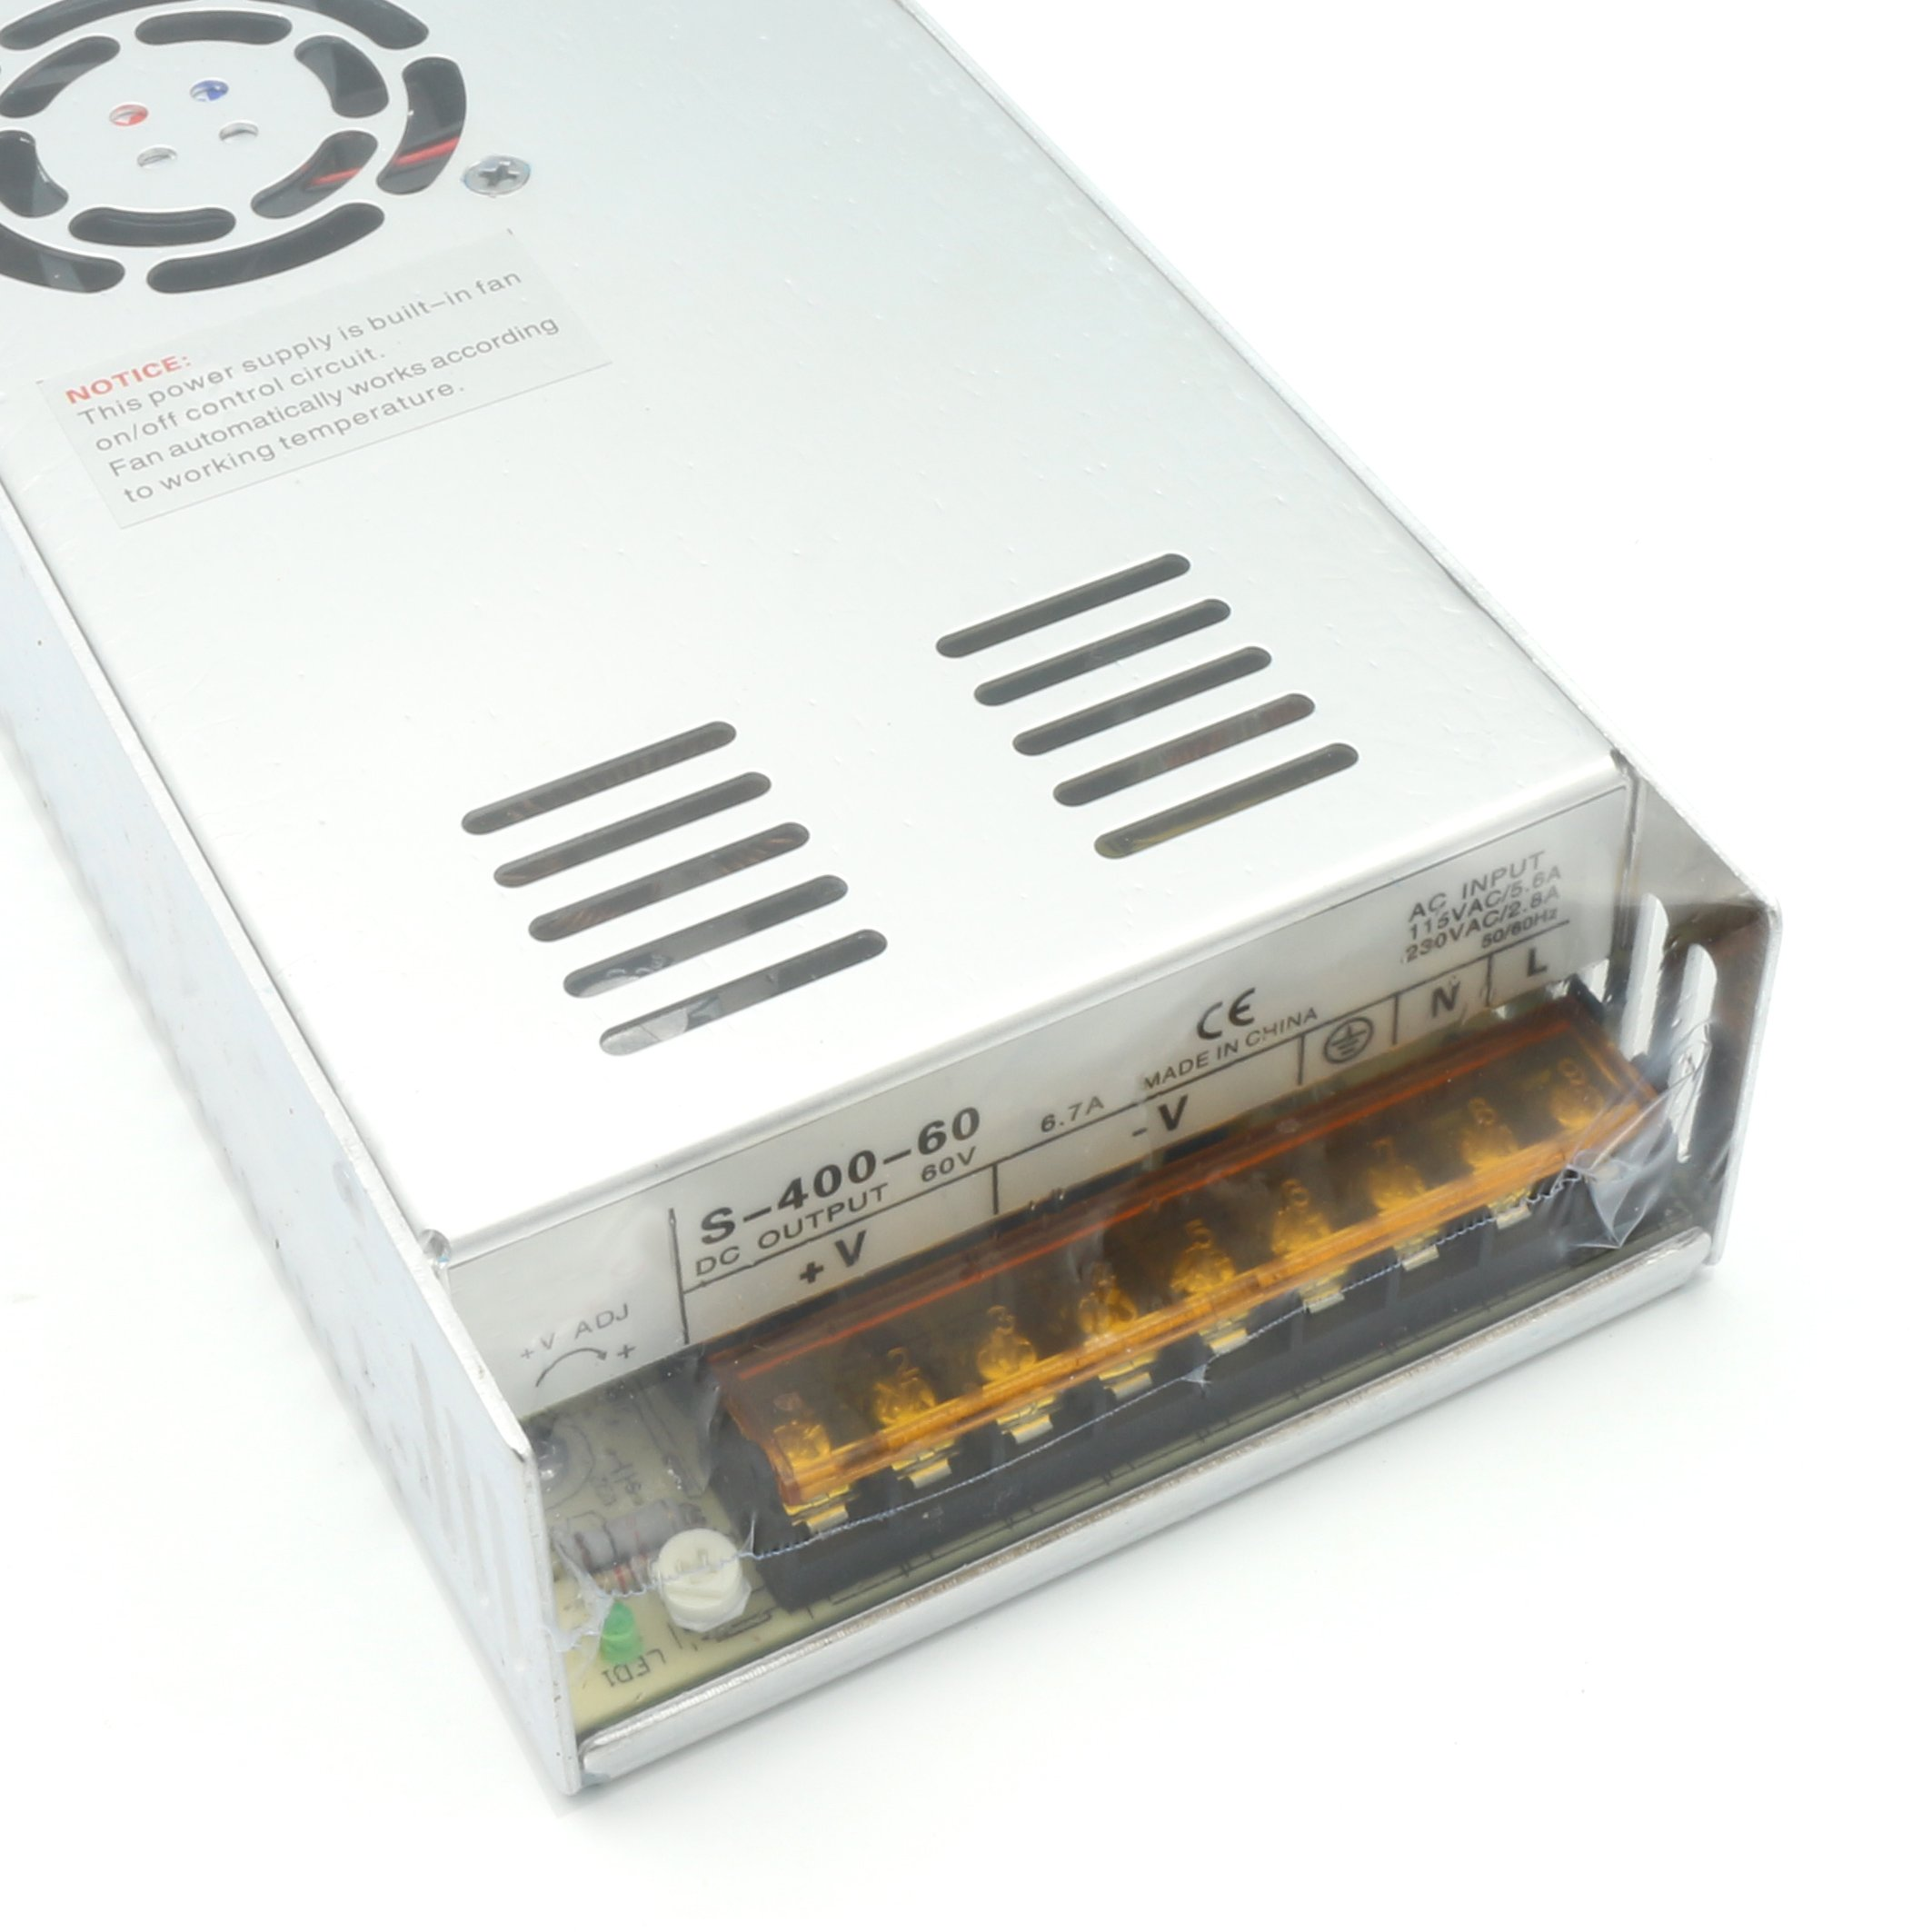 400W 60V Switch Power supply, DC power S-400-60 6.6A CNC Router Single Output Foaming Mill Cut Laser Engraver Plasma